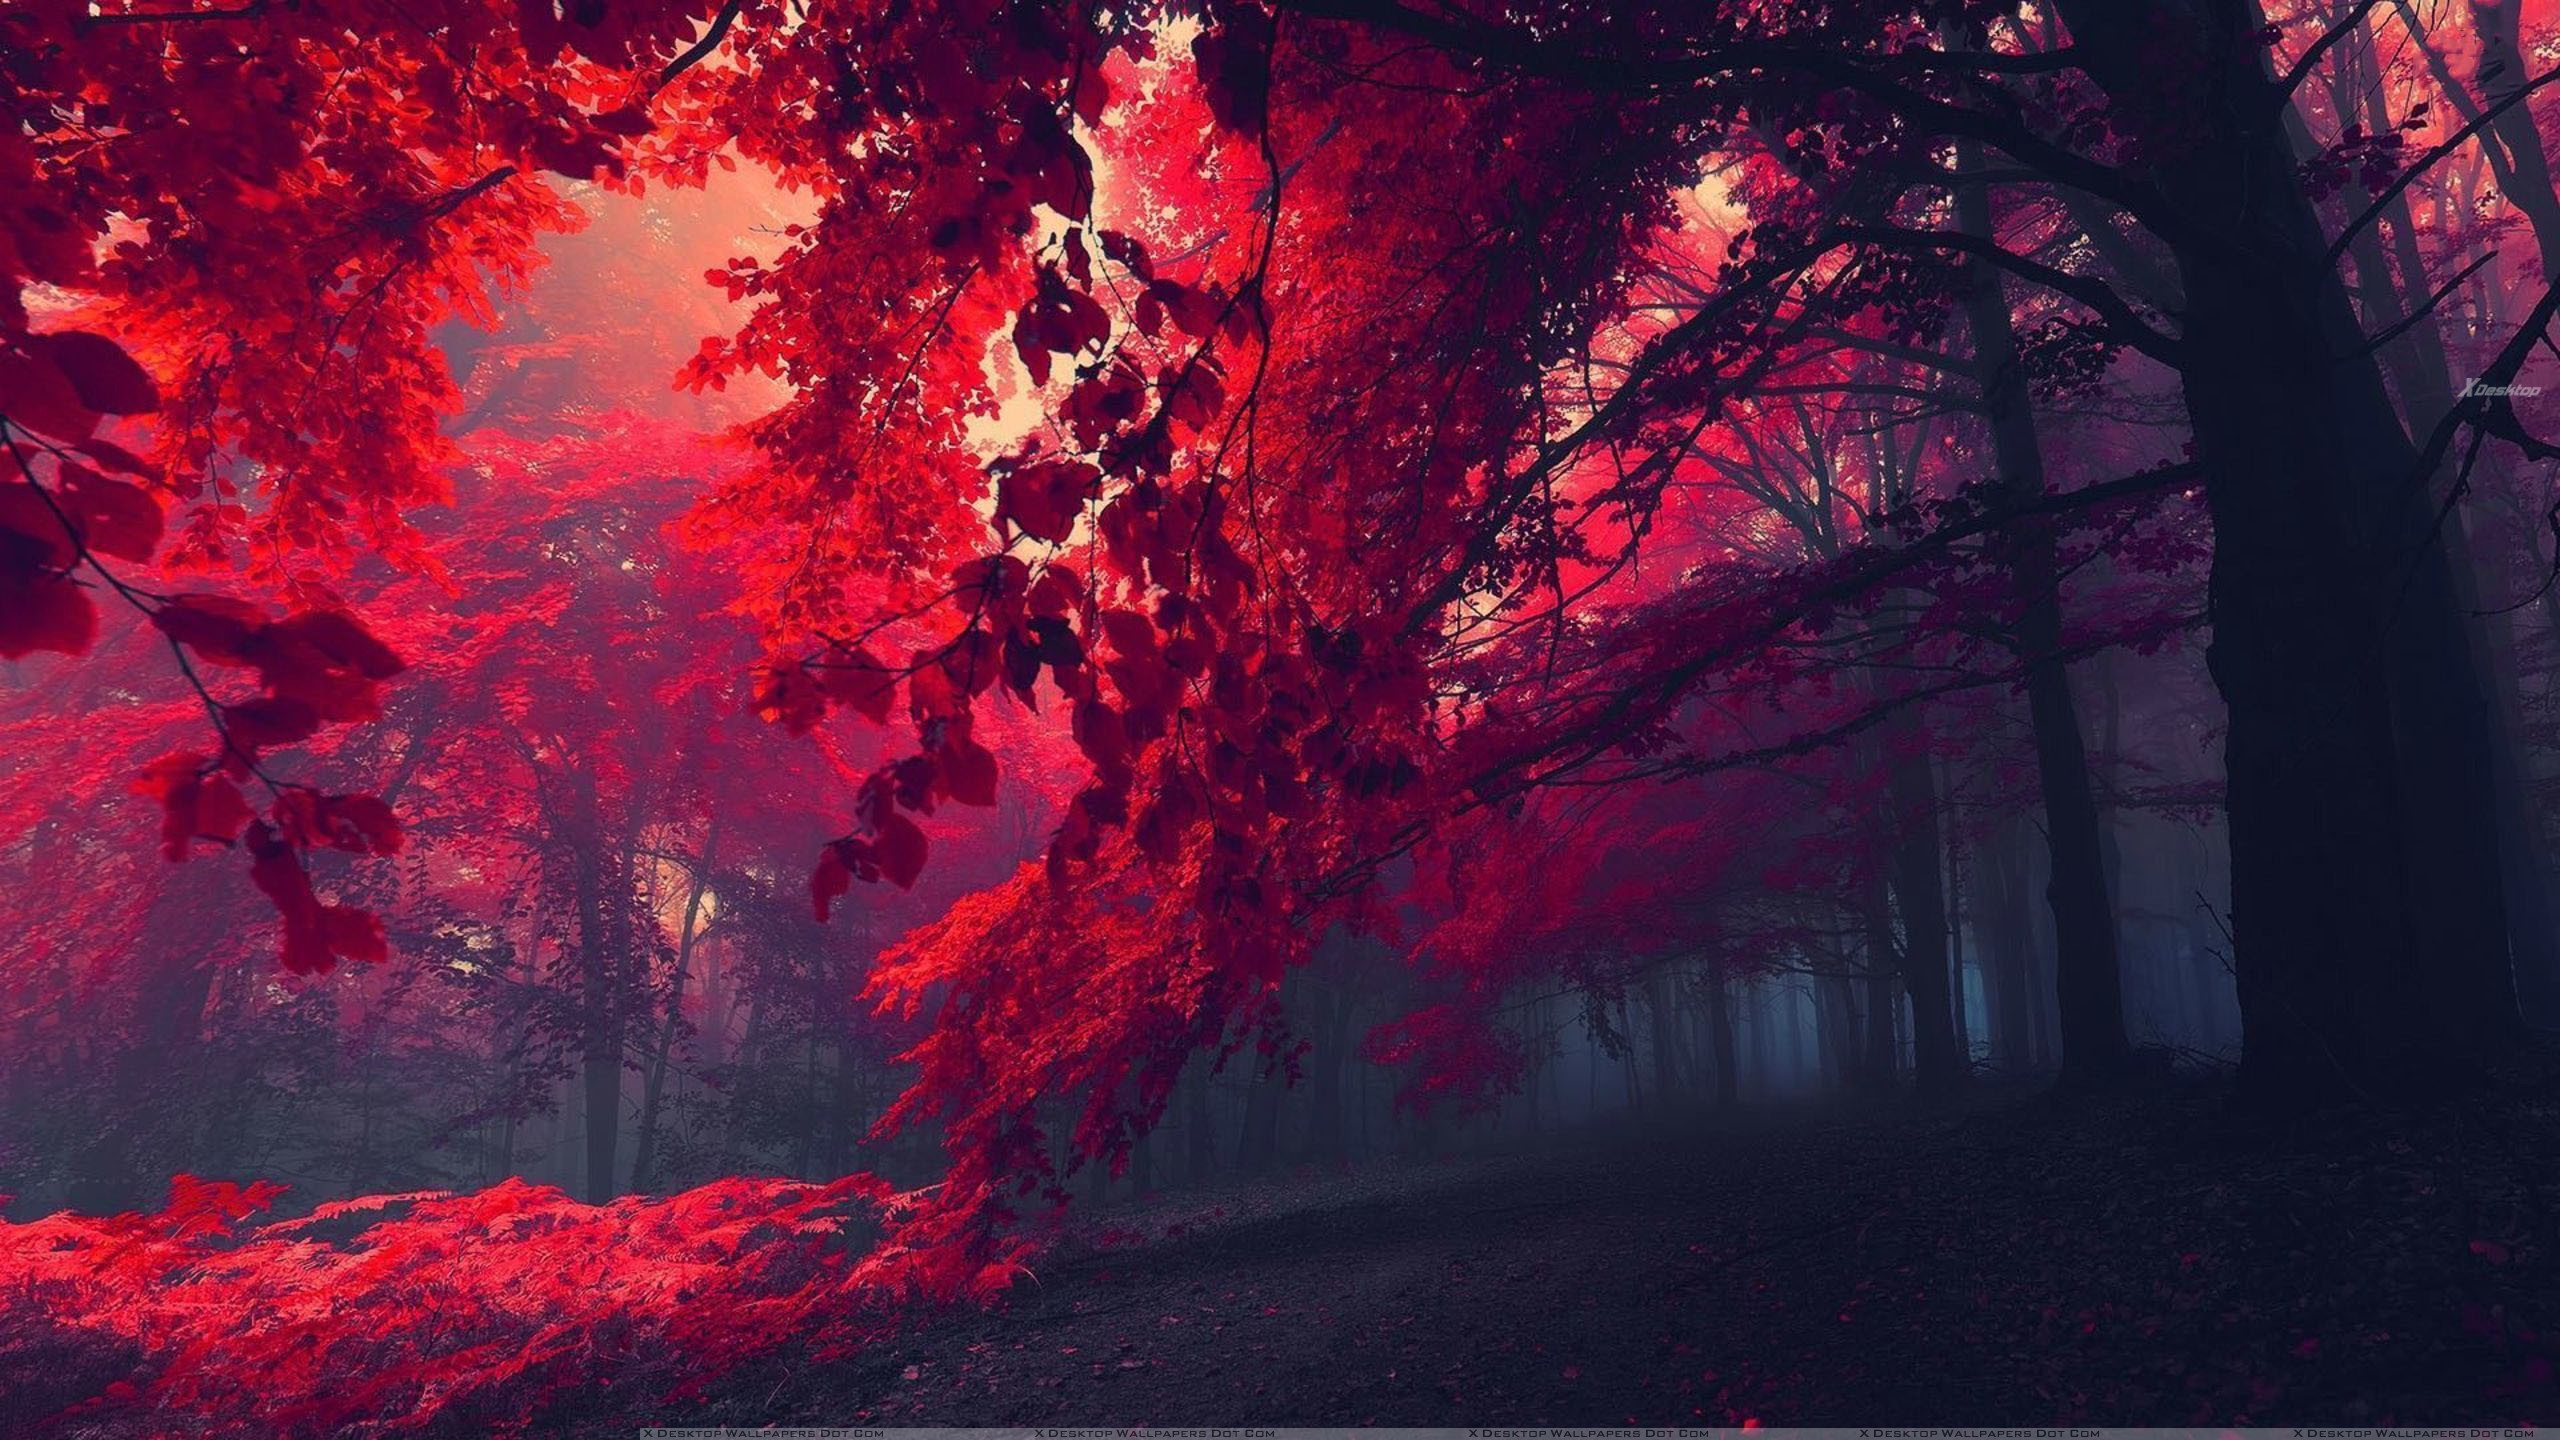 who wants to walk in this beautiful red forest wallpaper